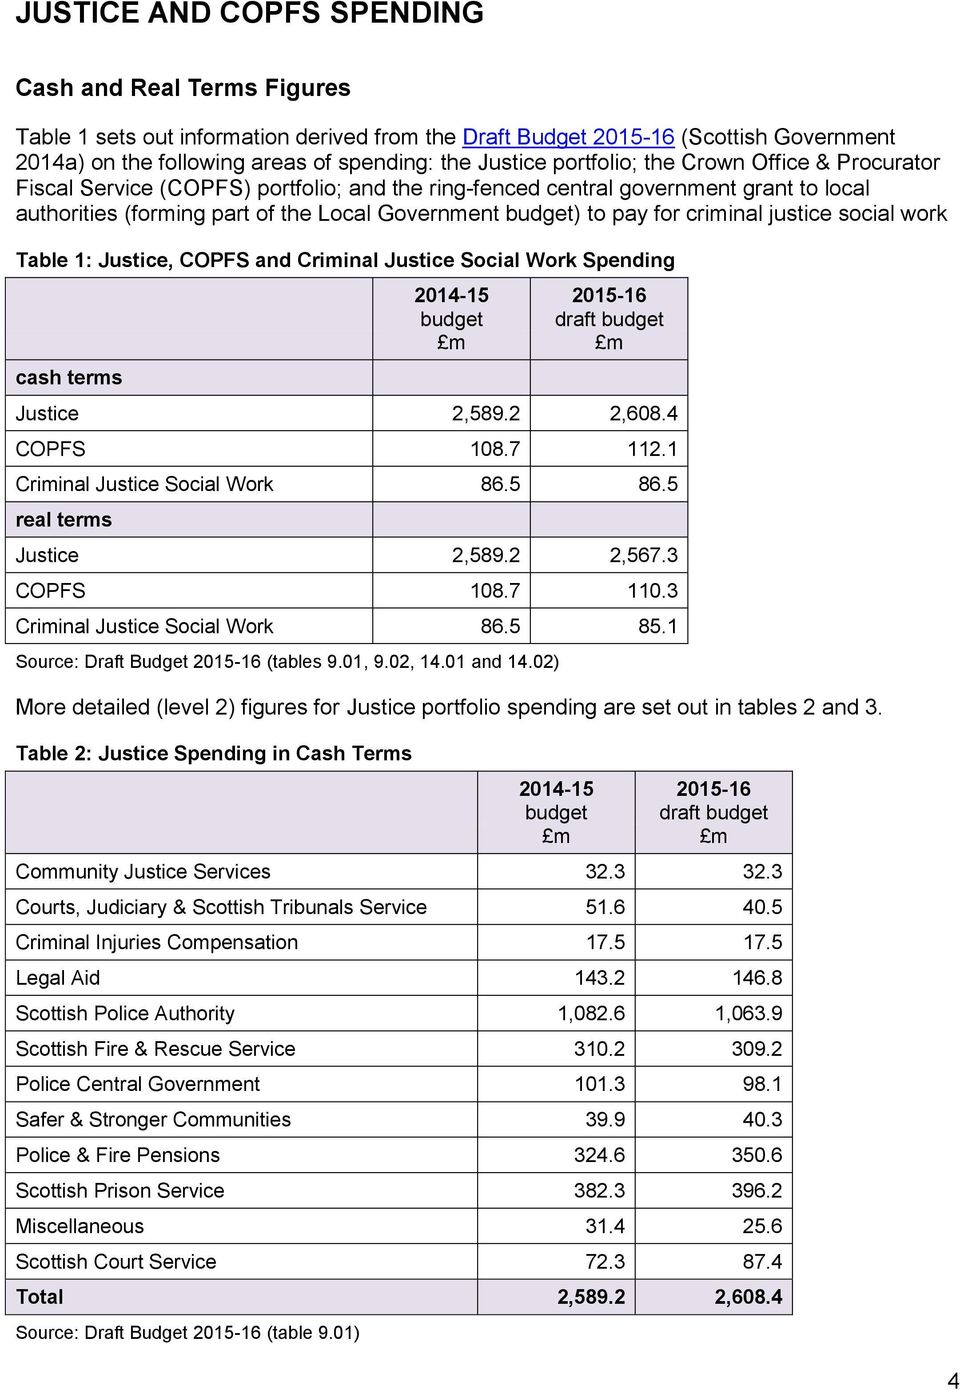 criminal justice social work Table 1: Justice, COPFS and Criminal Justice Social Work Spending cash terms 2014-15 2015-16 budget draft budget m m Justice 2,589.2 2,608.4 COPFS 108.7 112.